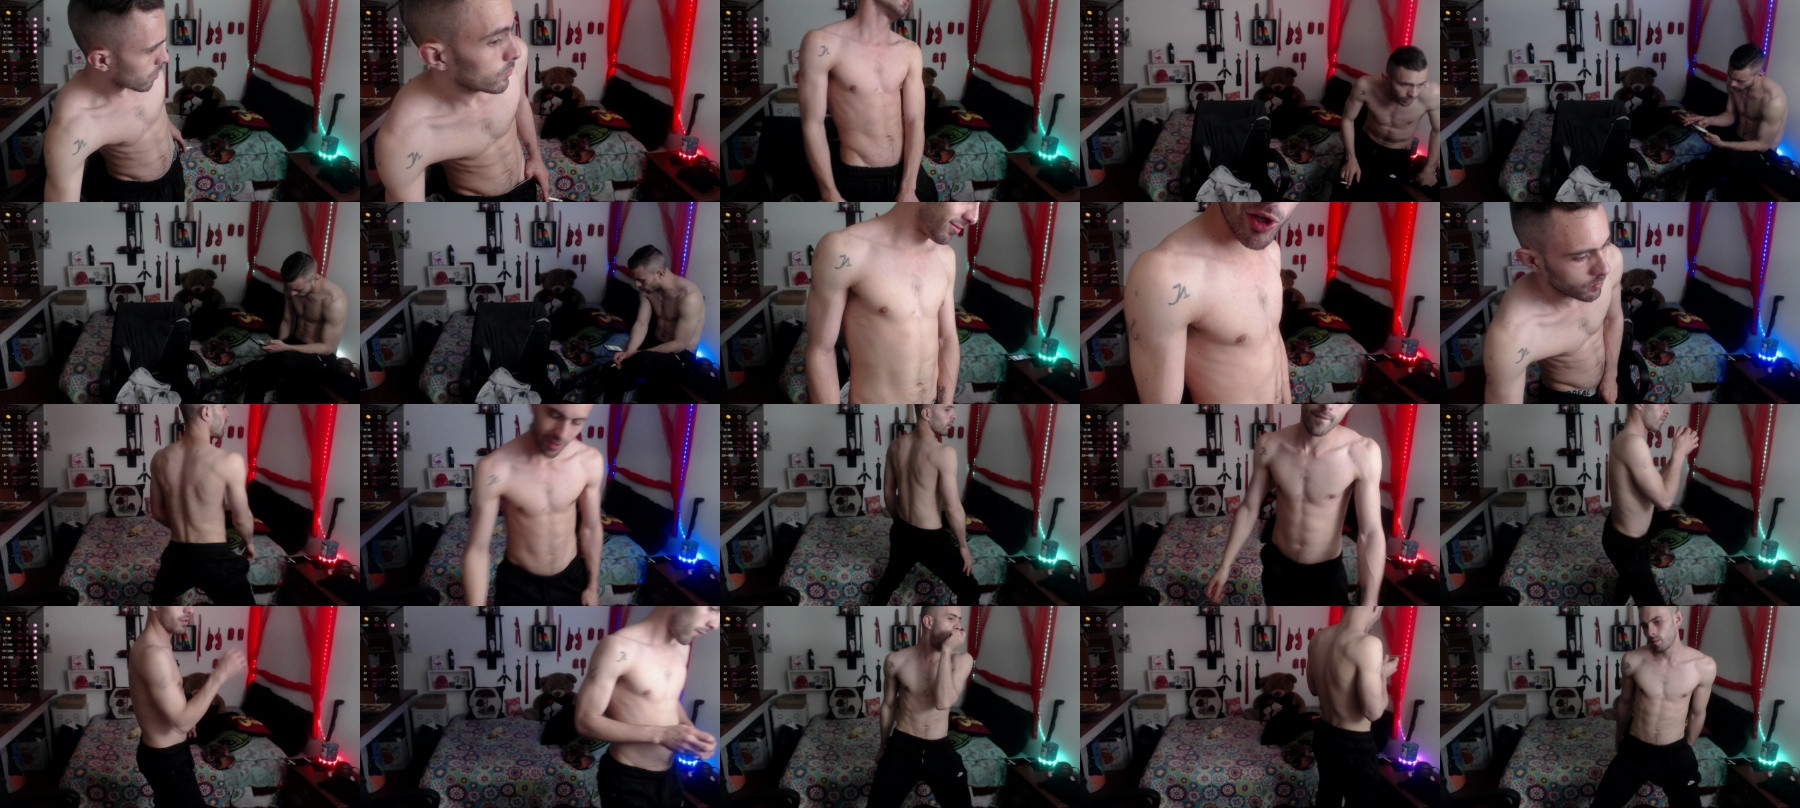 jan_125 Cam4 03-03-2021 Recorded Video Nude